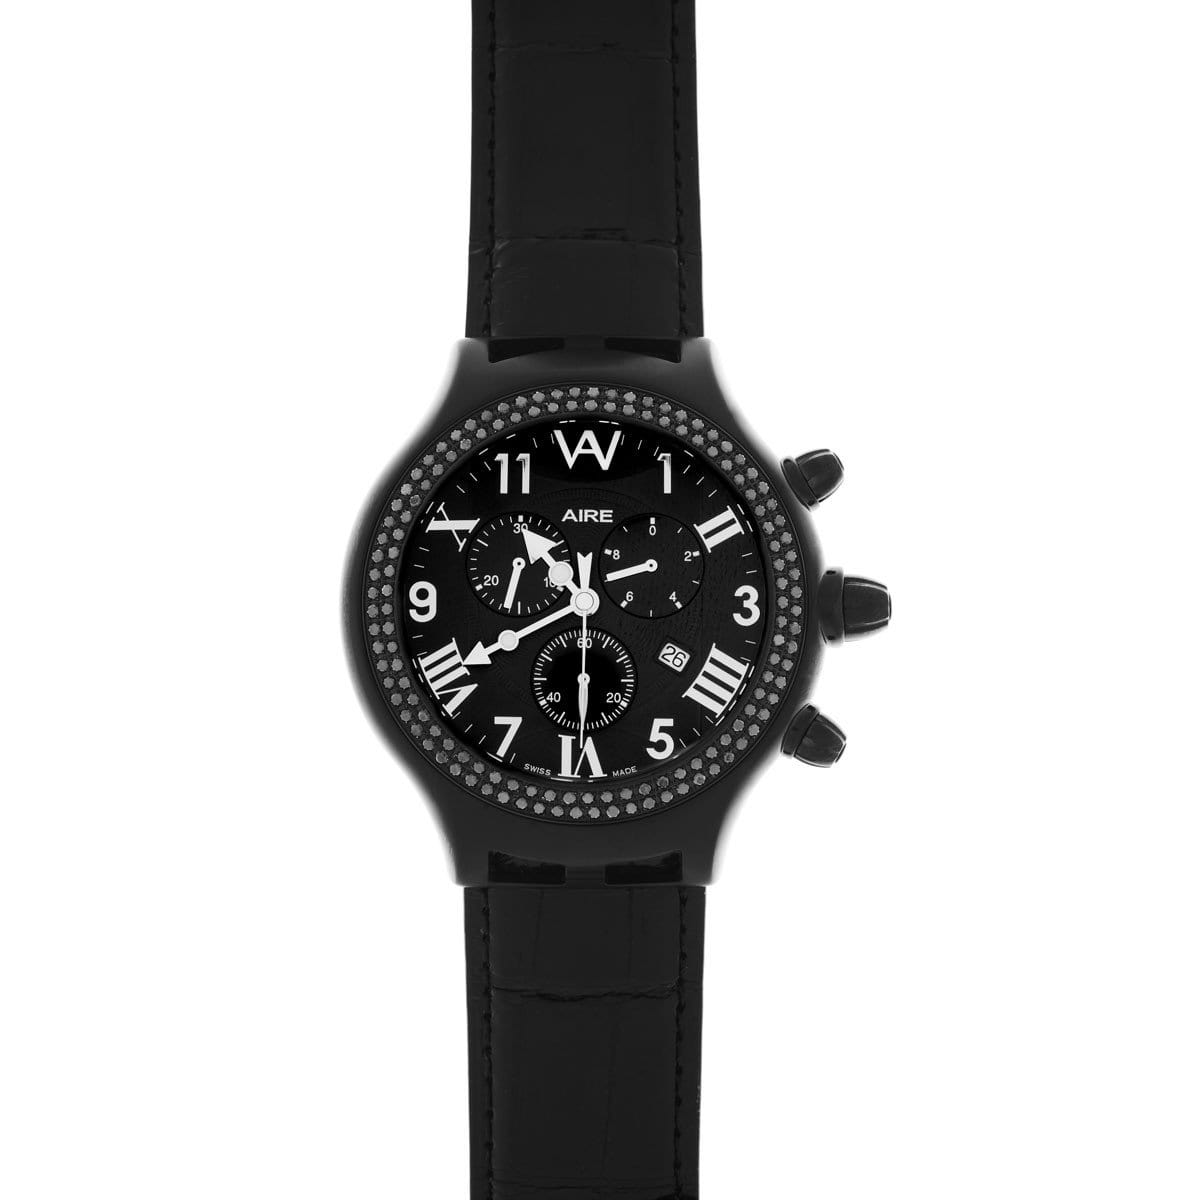 "PARLAY ""BLACK"" MEN'S WATCH - Chris Aire Fine Jewelry & Timepieces"